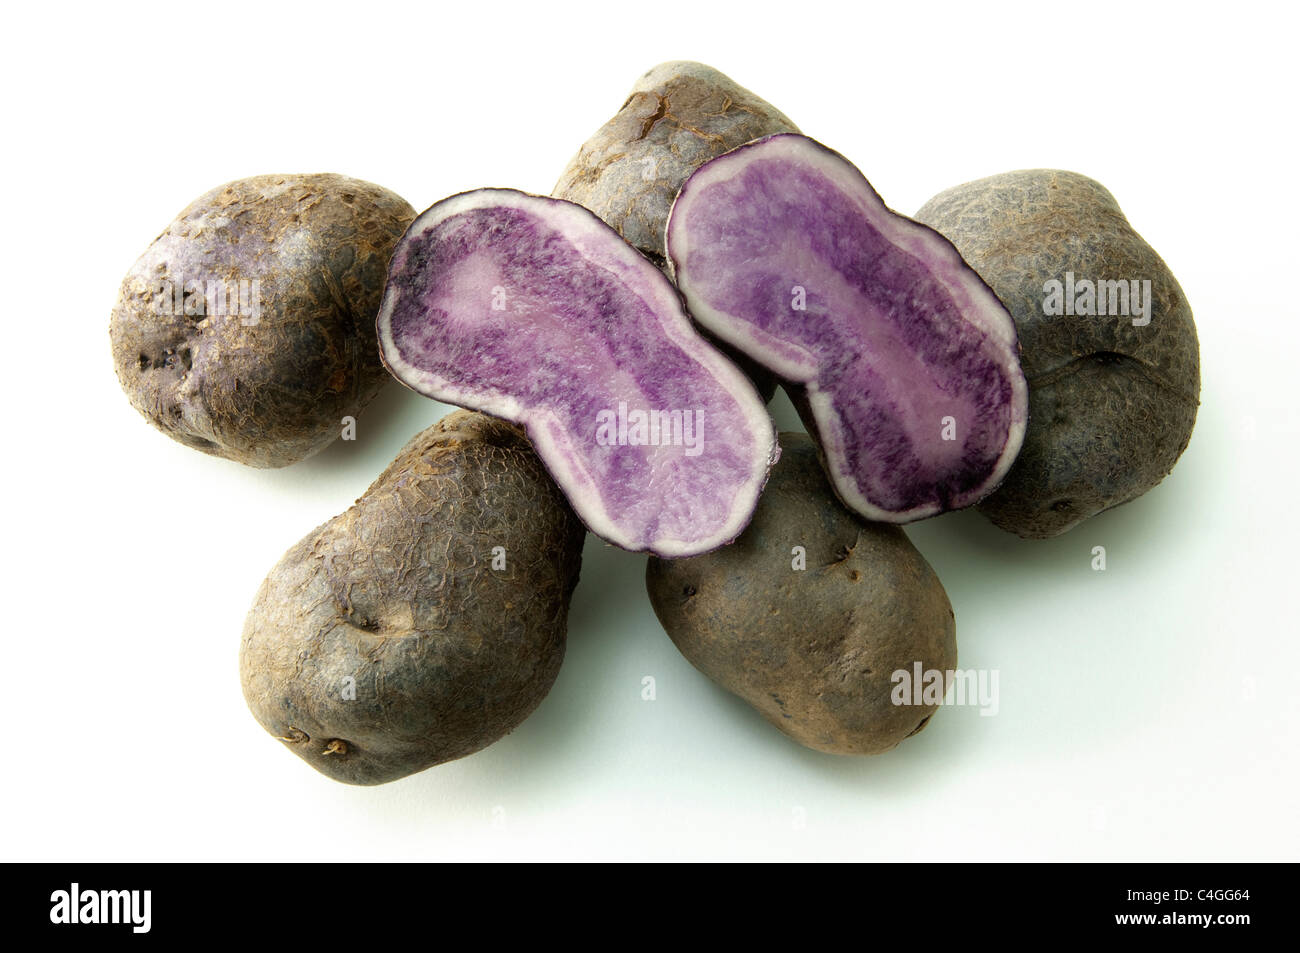 Potato (Solanum tuberosum Blue Congo). Potatoes, studio picture against a white background. - Stock Image